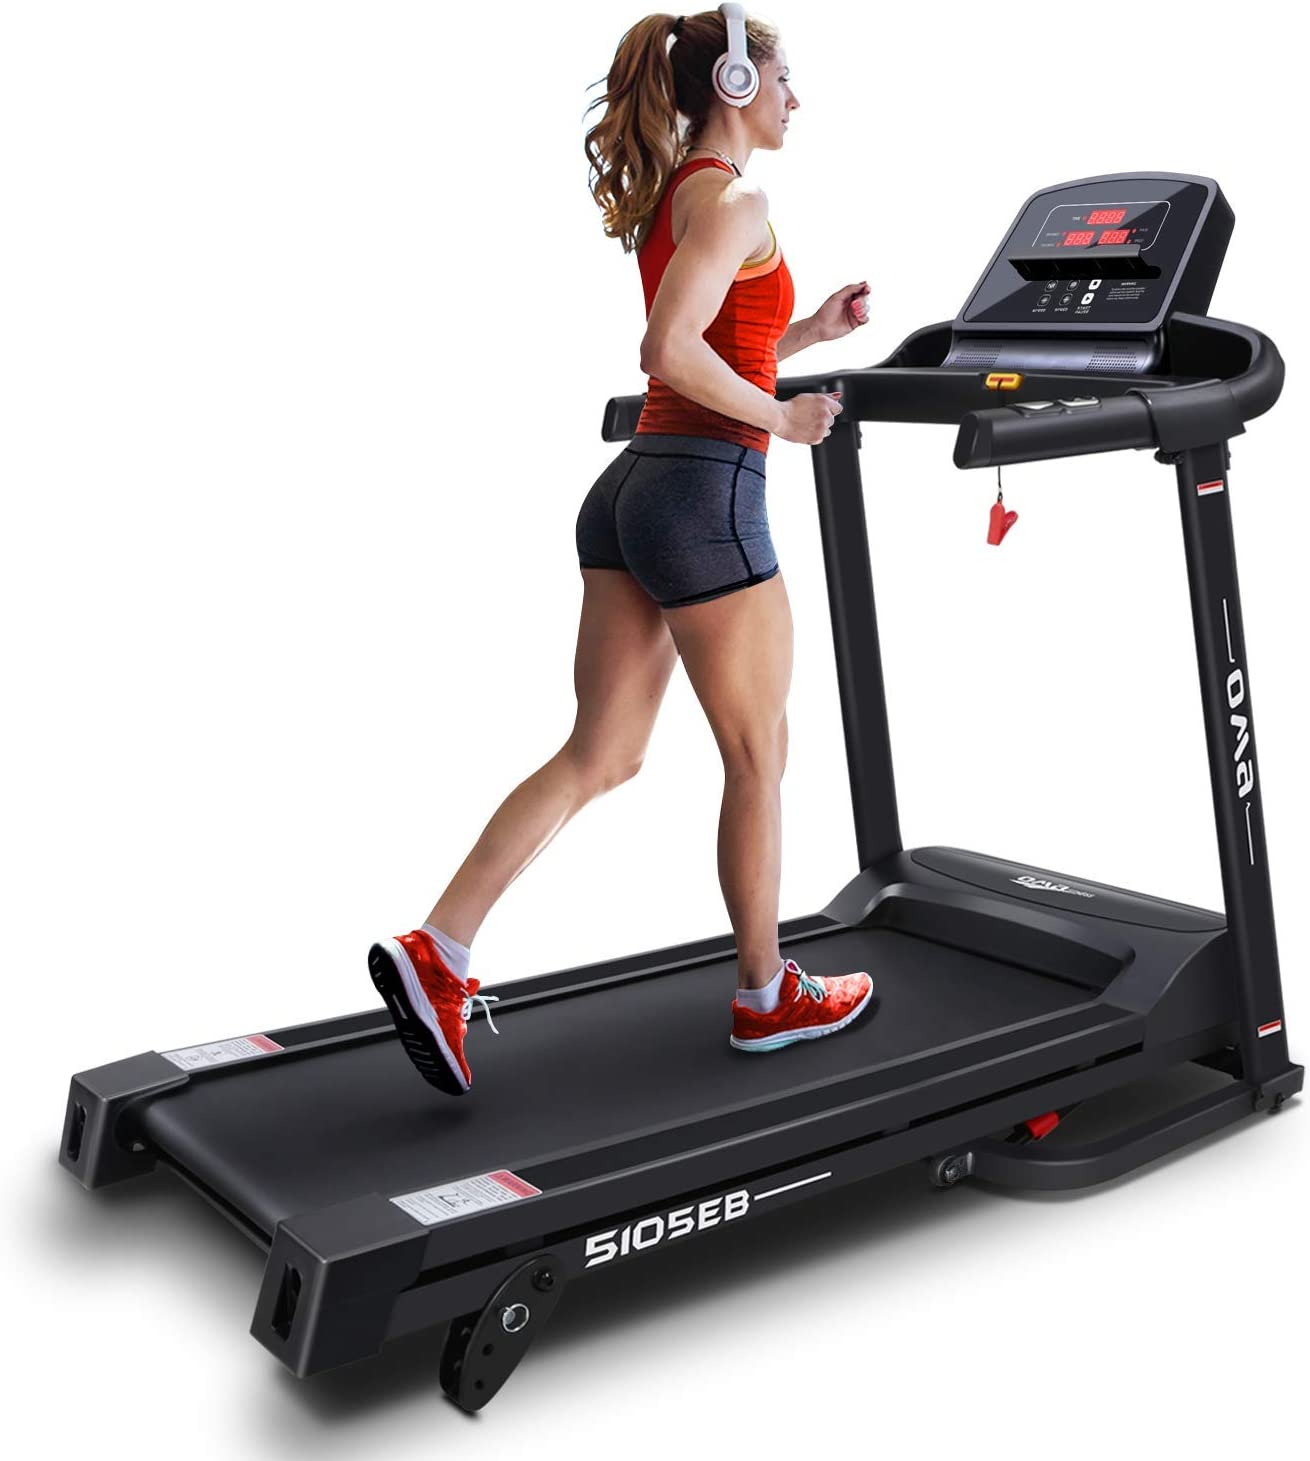 OMA Home Treadmills, Max 2.25 HP Folding Incline Treadmills for Running and Walking Exercise with LED Display of Tracking Heart Rate, Calories - Black